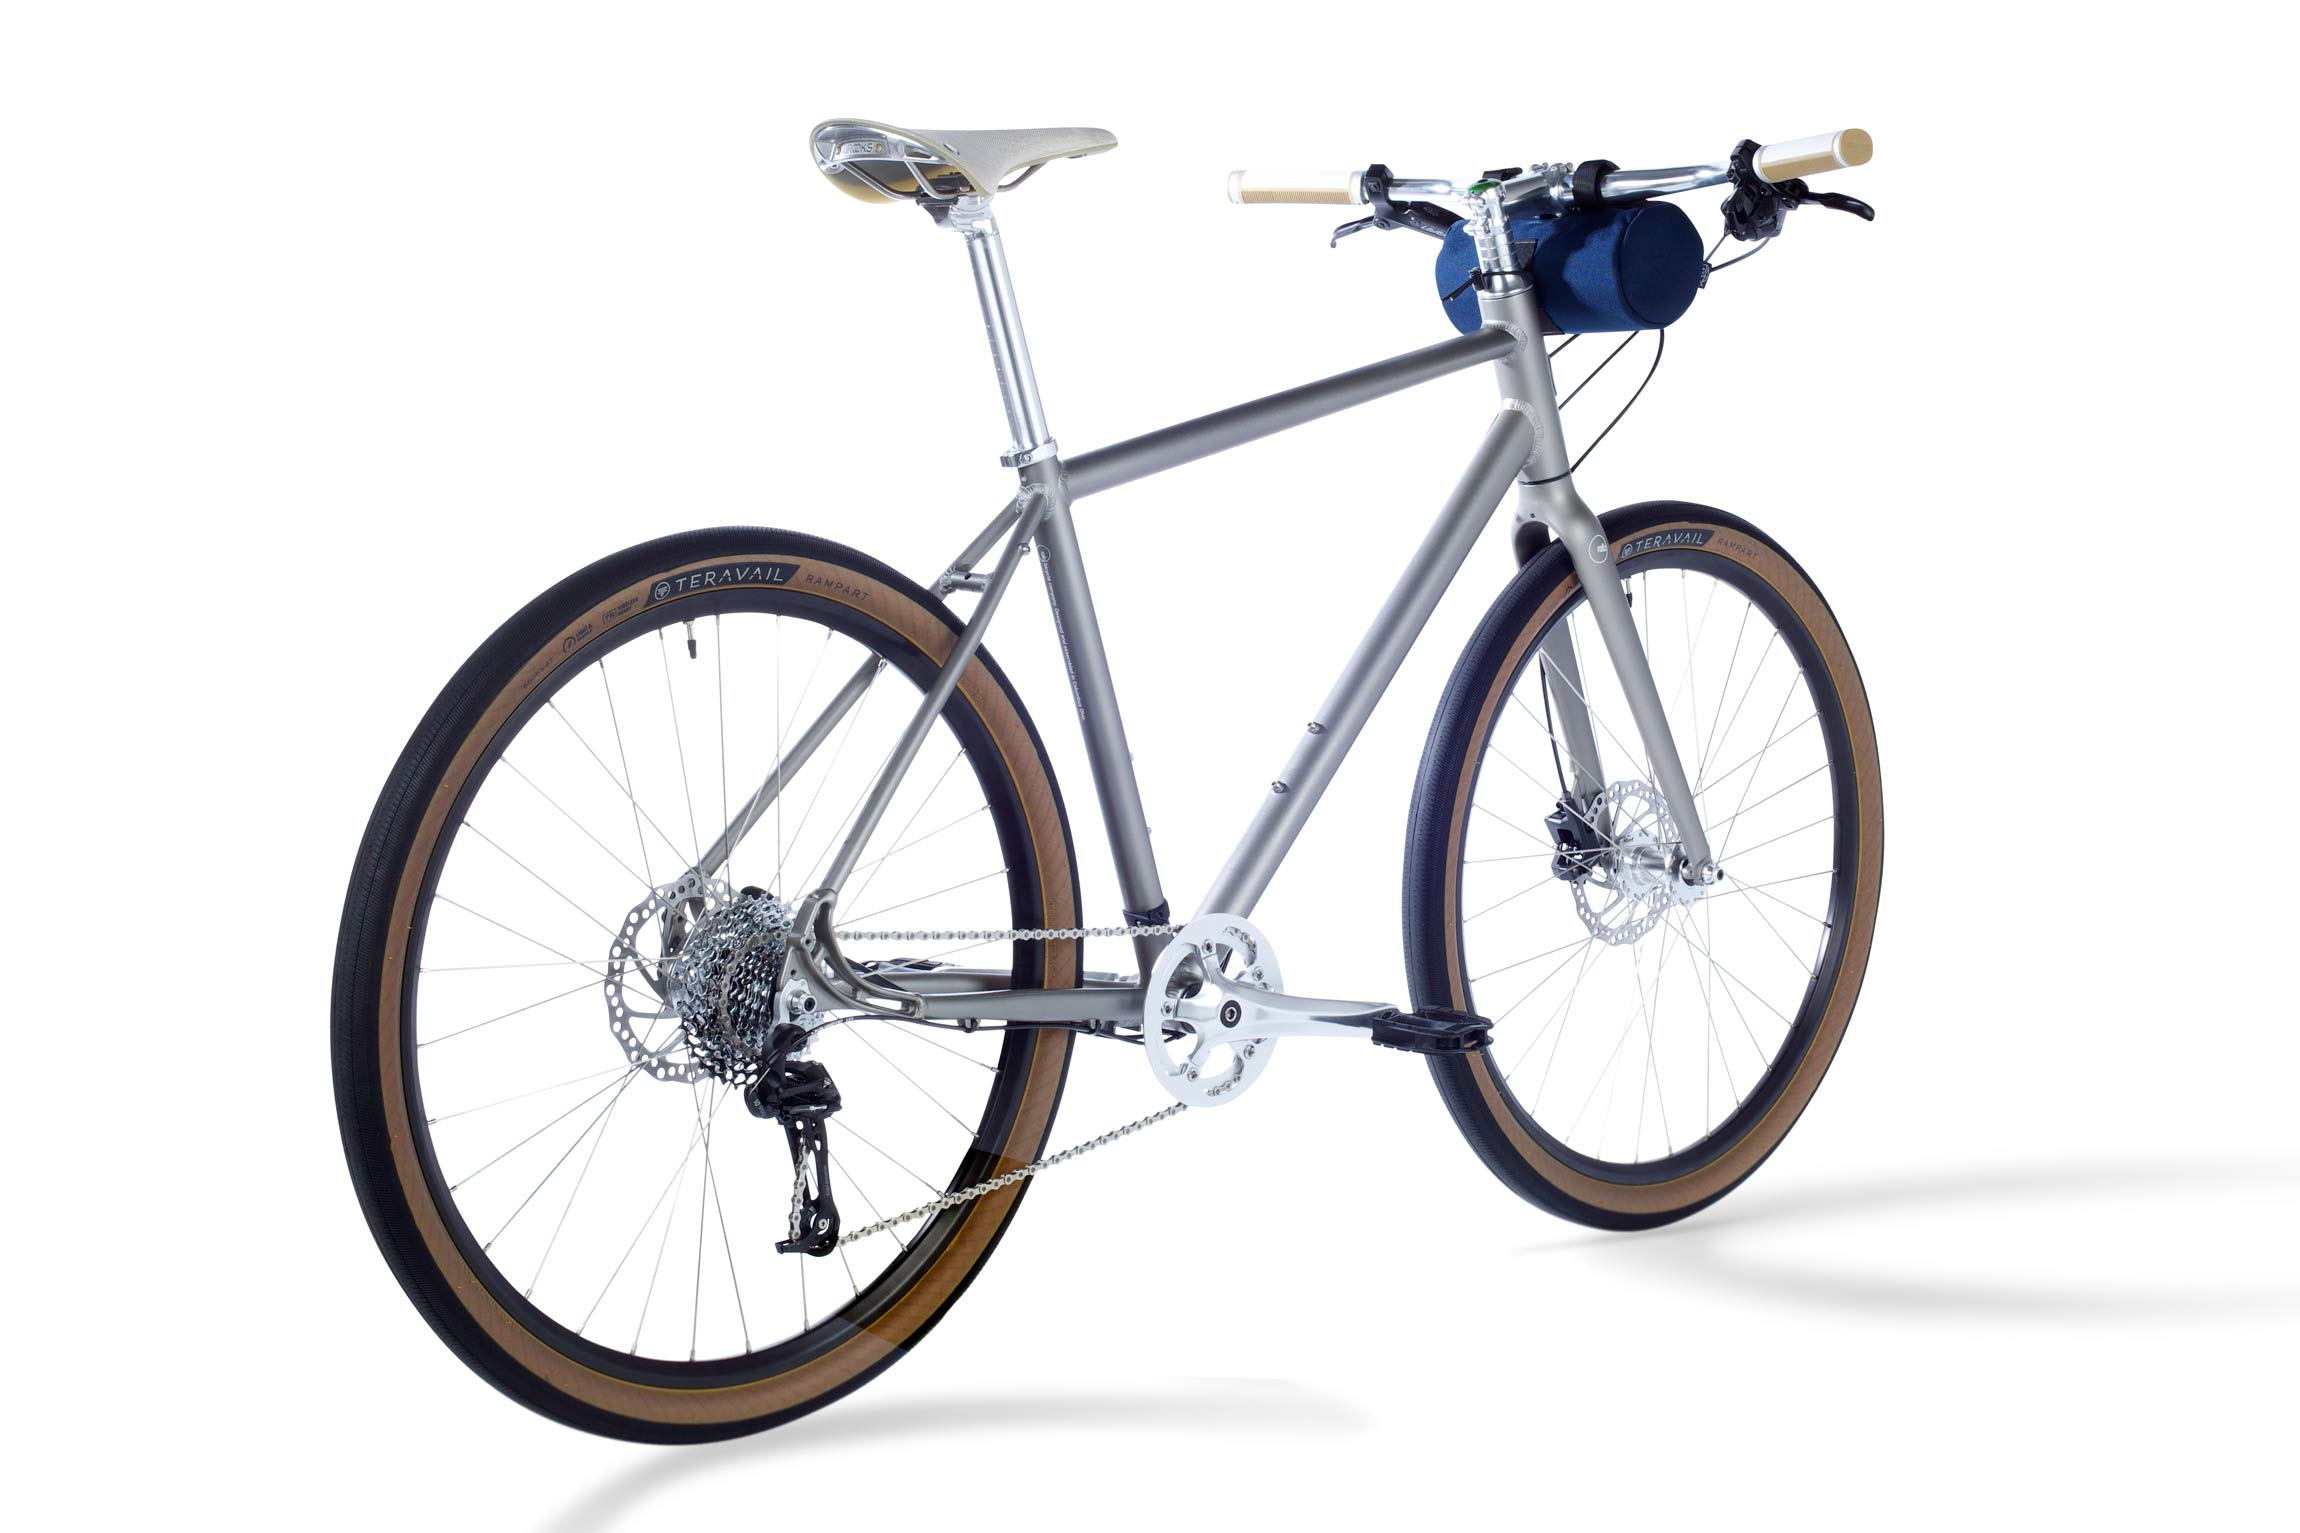 rear angled view of the new Gr:1 gravel road bicycle from roll: